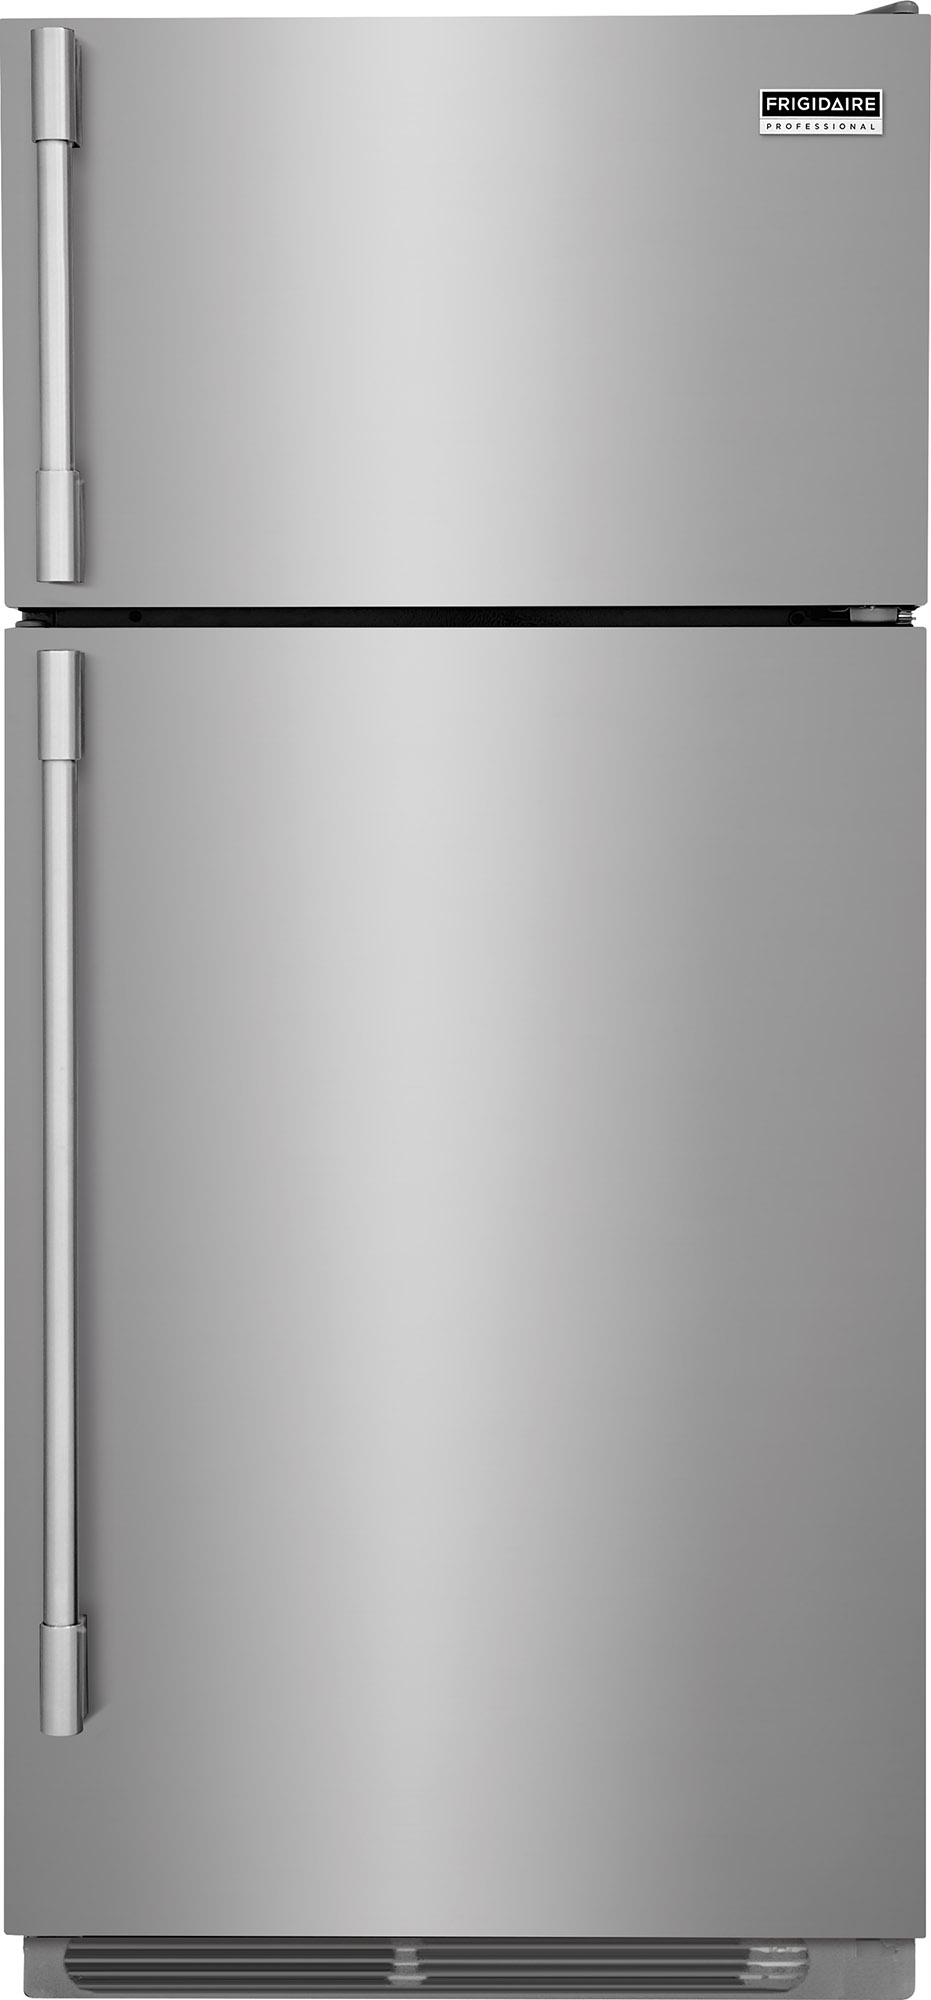 Frigidaire Professional 18 Cu Ft Top Freezer Refrigerator Smudge Proof